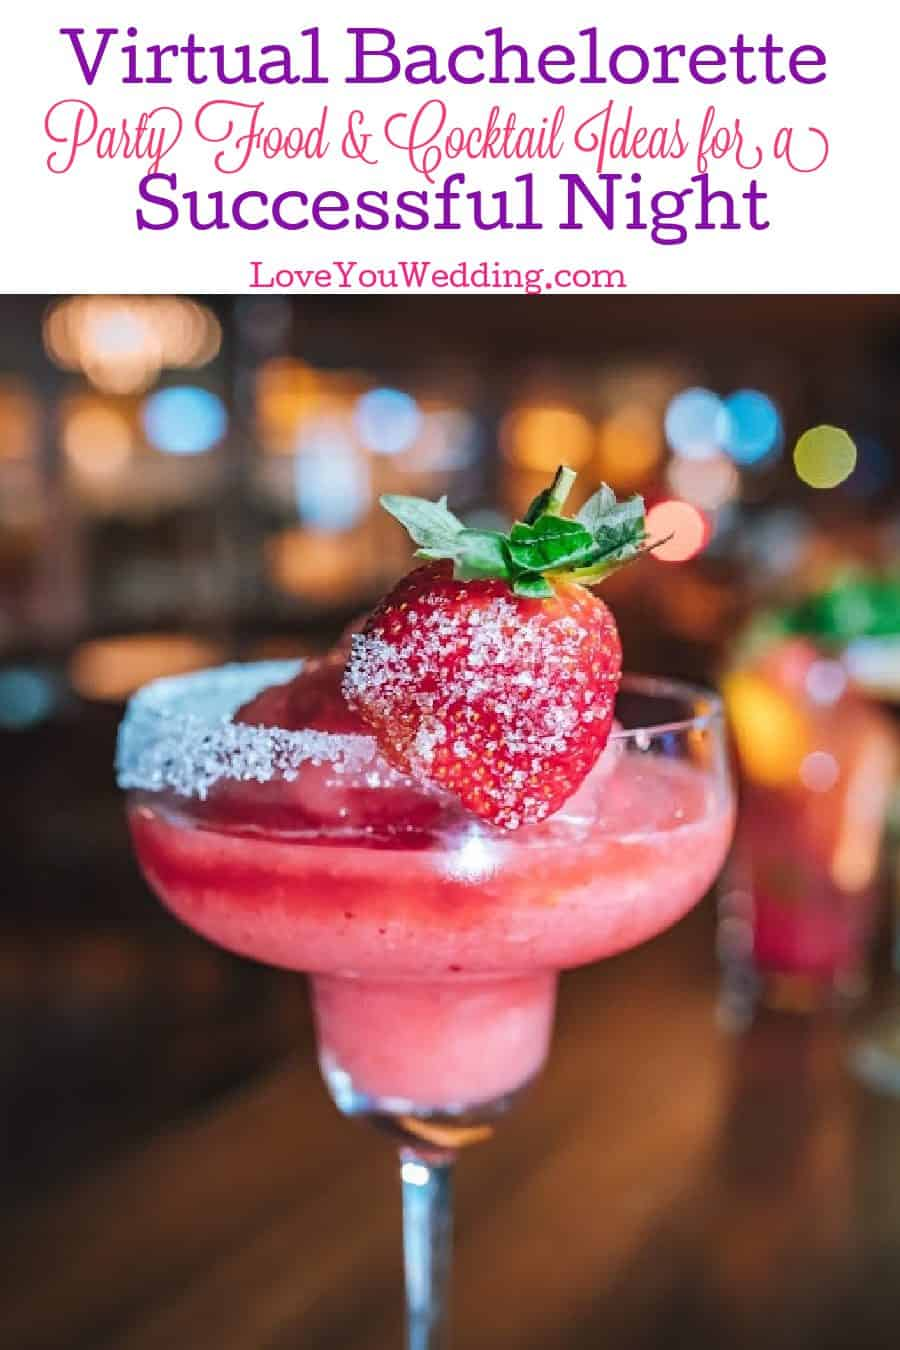 Need virtual bachelorette party food ideas but don't even know where to start? Check out our guide with different options & recipes to try!